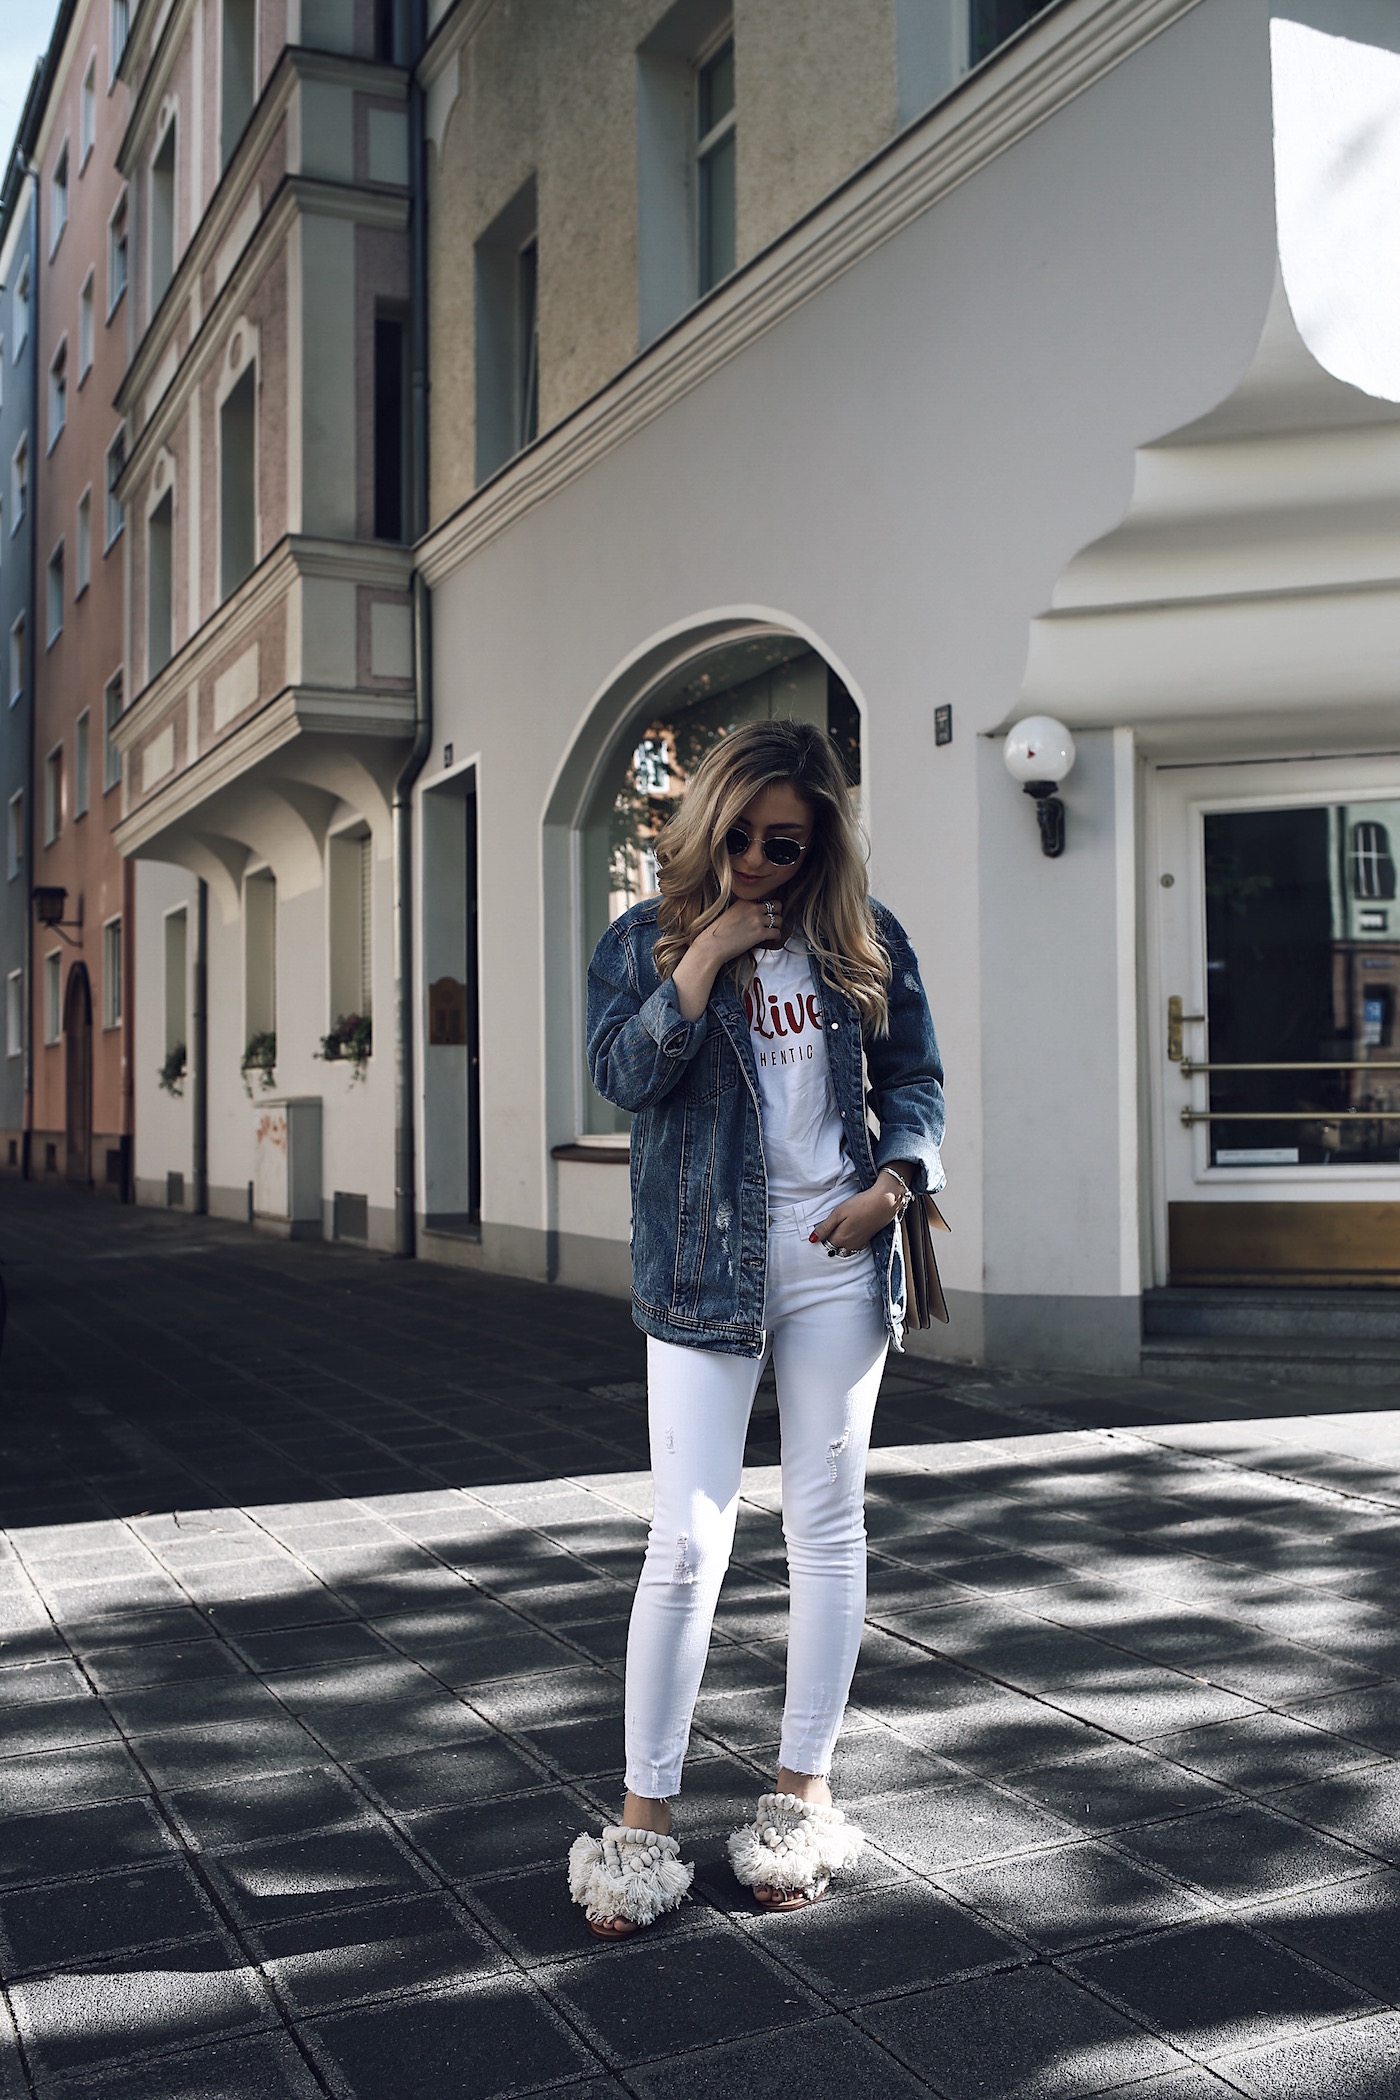 Denim Jacket Outfit for Summer 2017 | Want Get Repeat Fashion Blog from Nuremberg Erlangen Germany